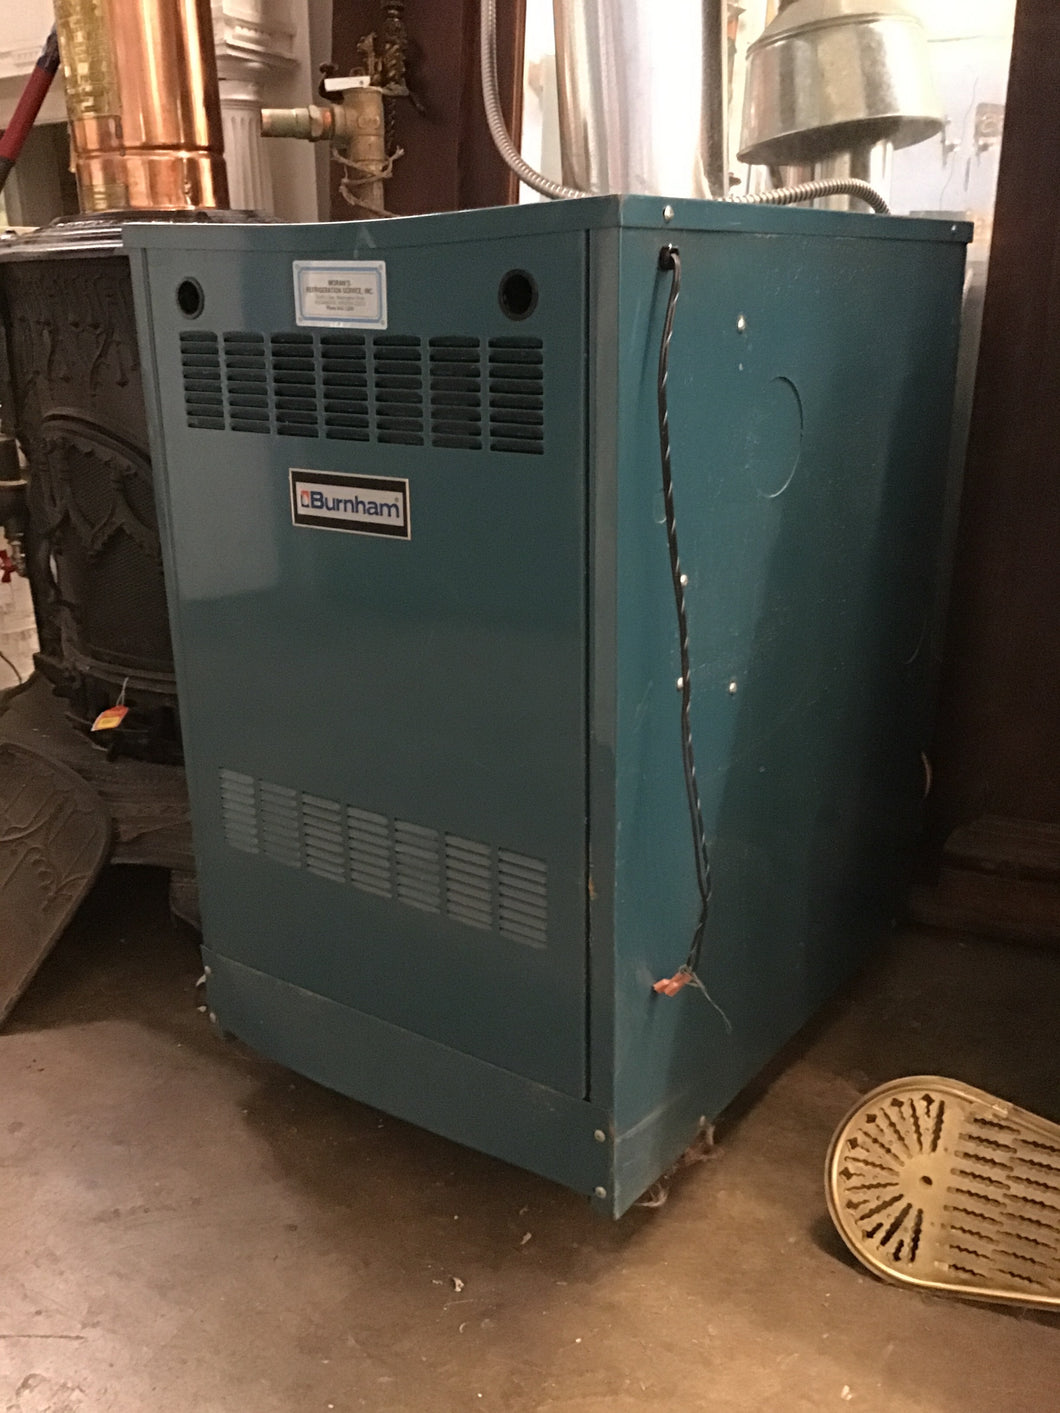 Burnham Series 2 Gas Boiler -130,000 btus